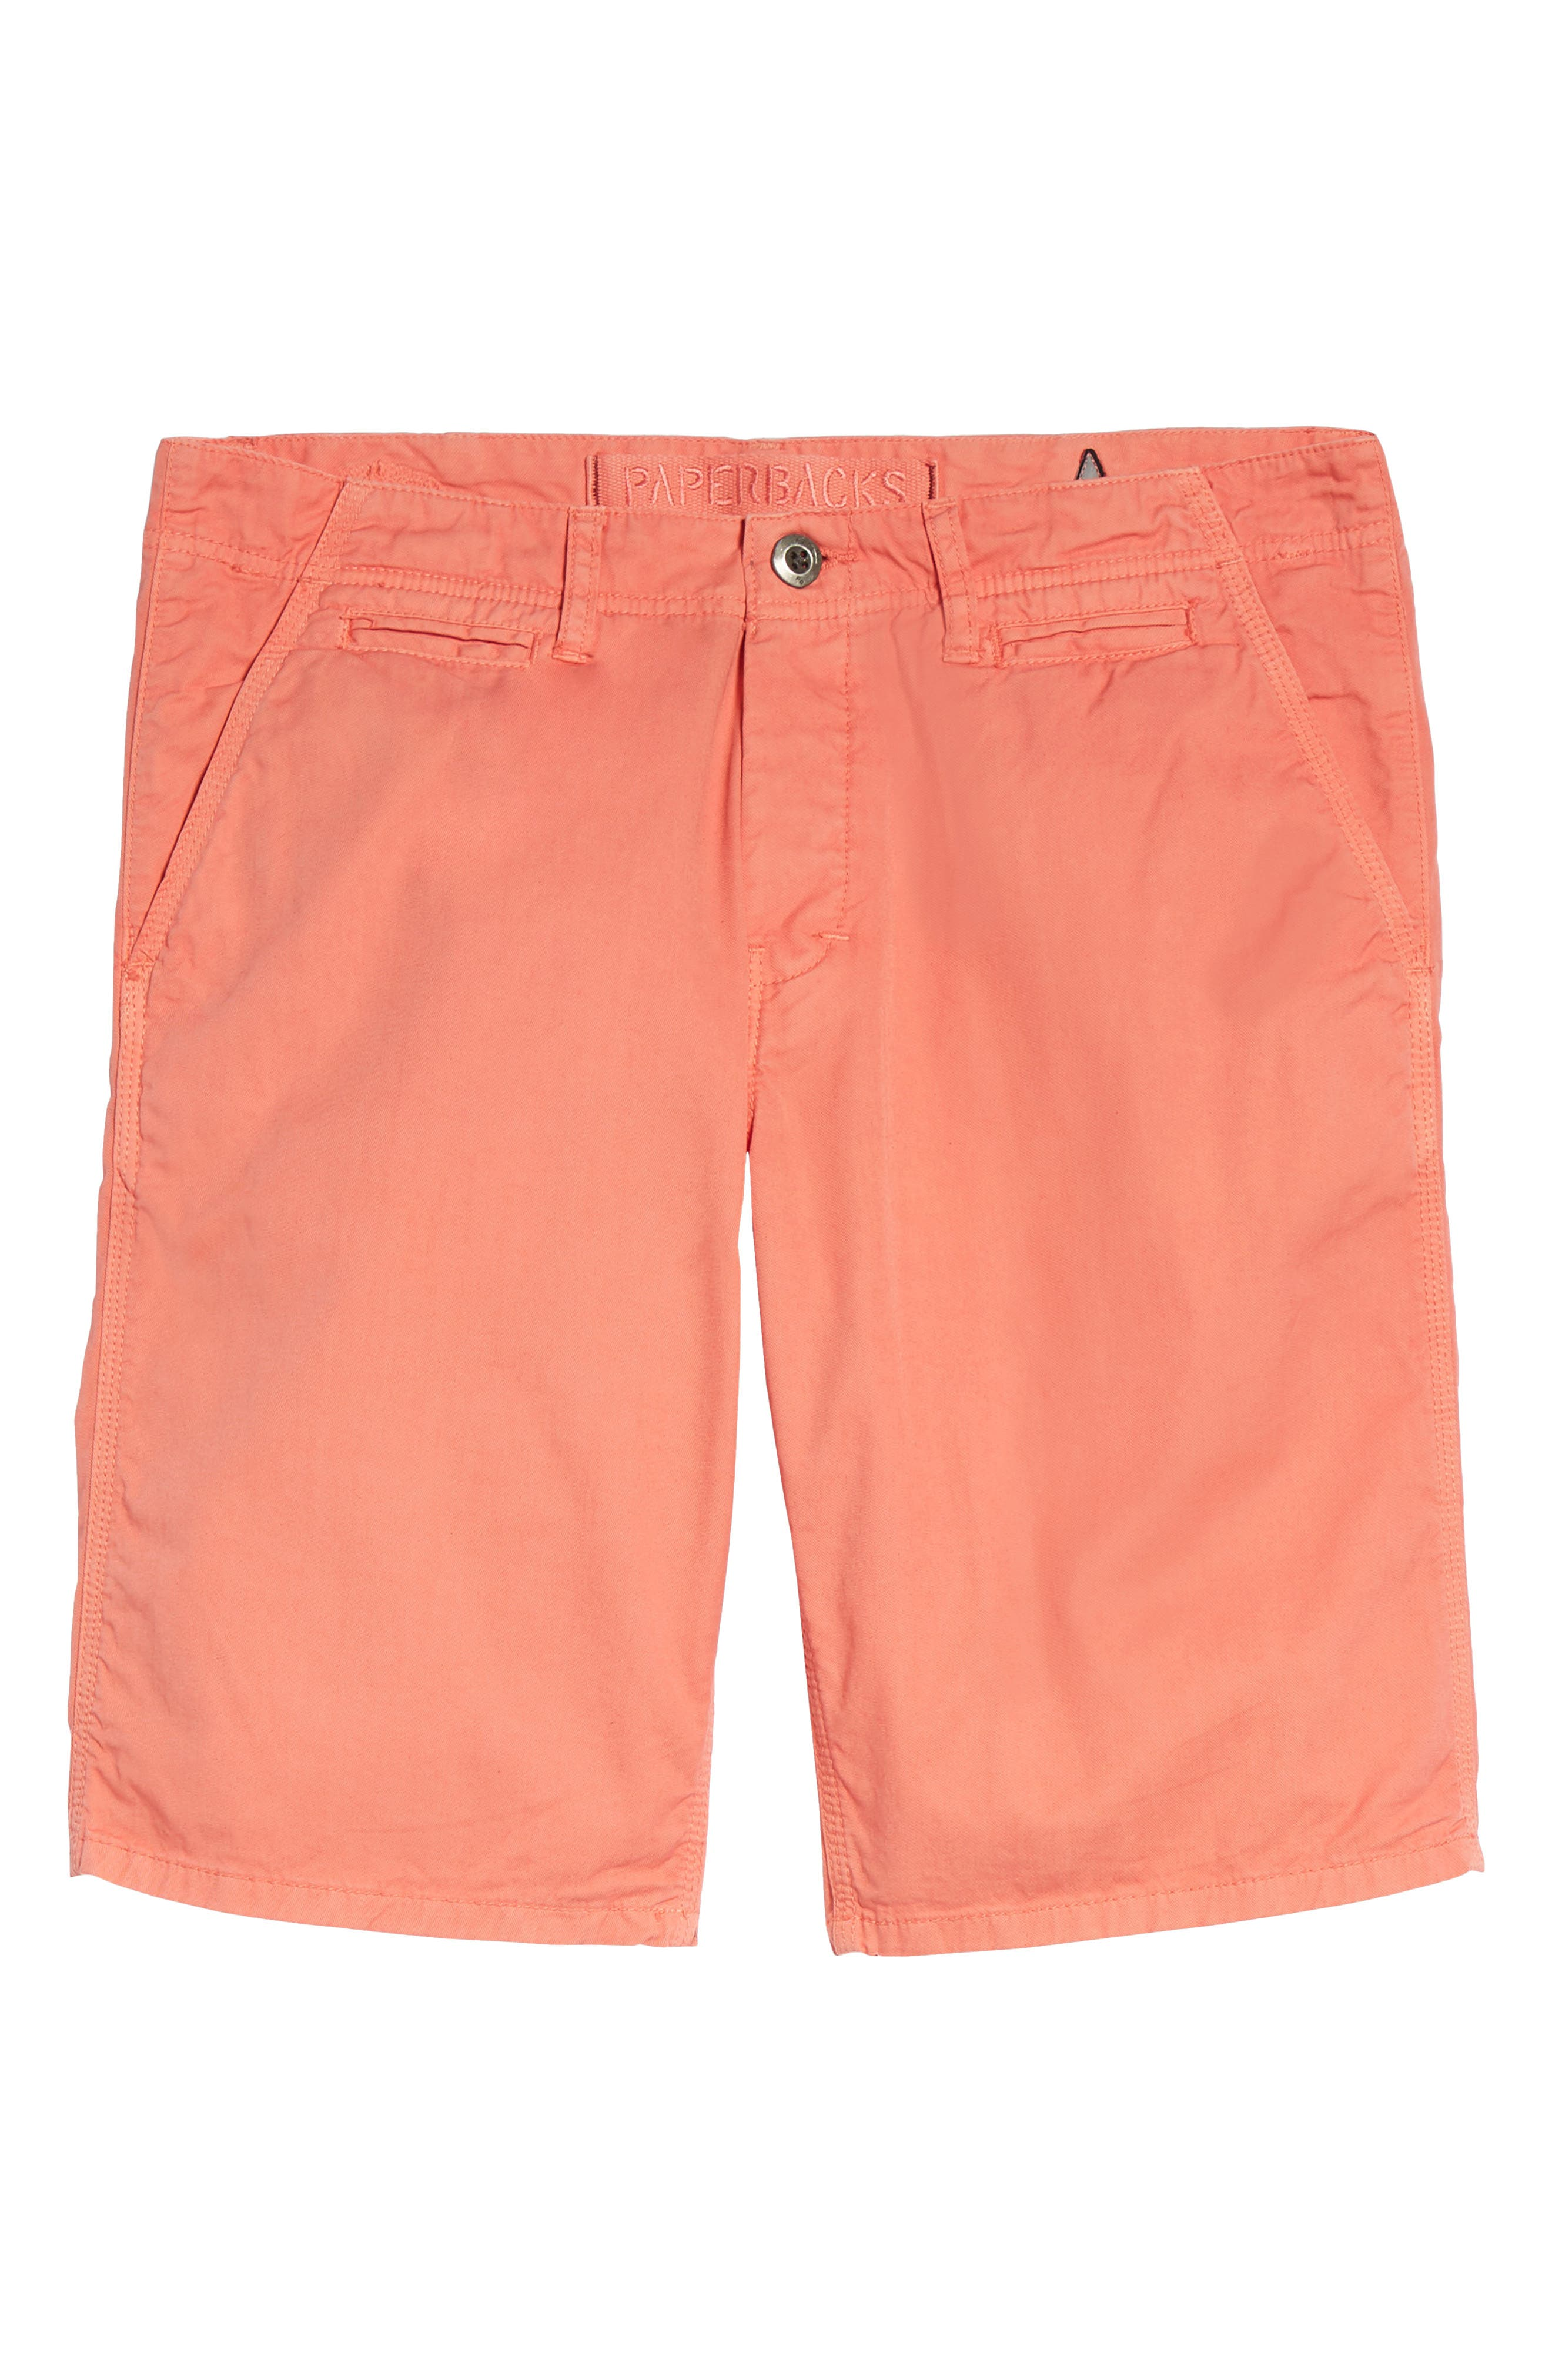 'Napa' Chino Shorts,                             Alternate thumbnail 68, color,